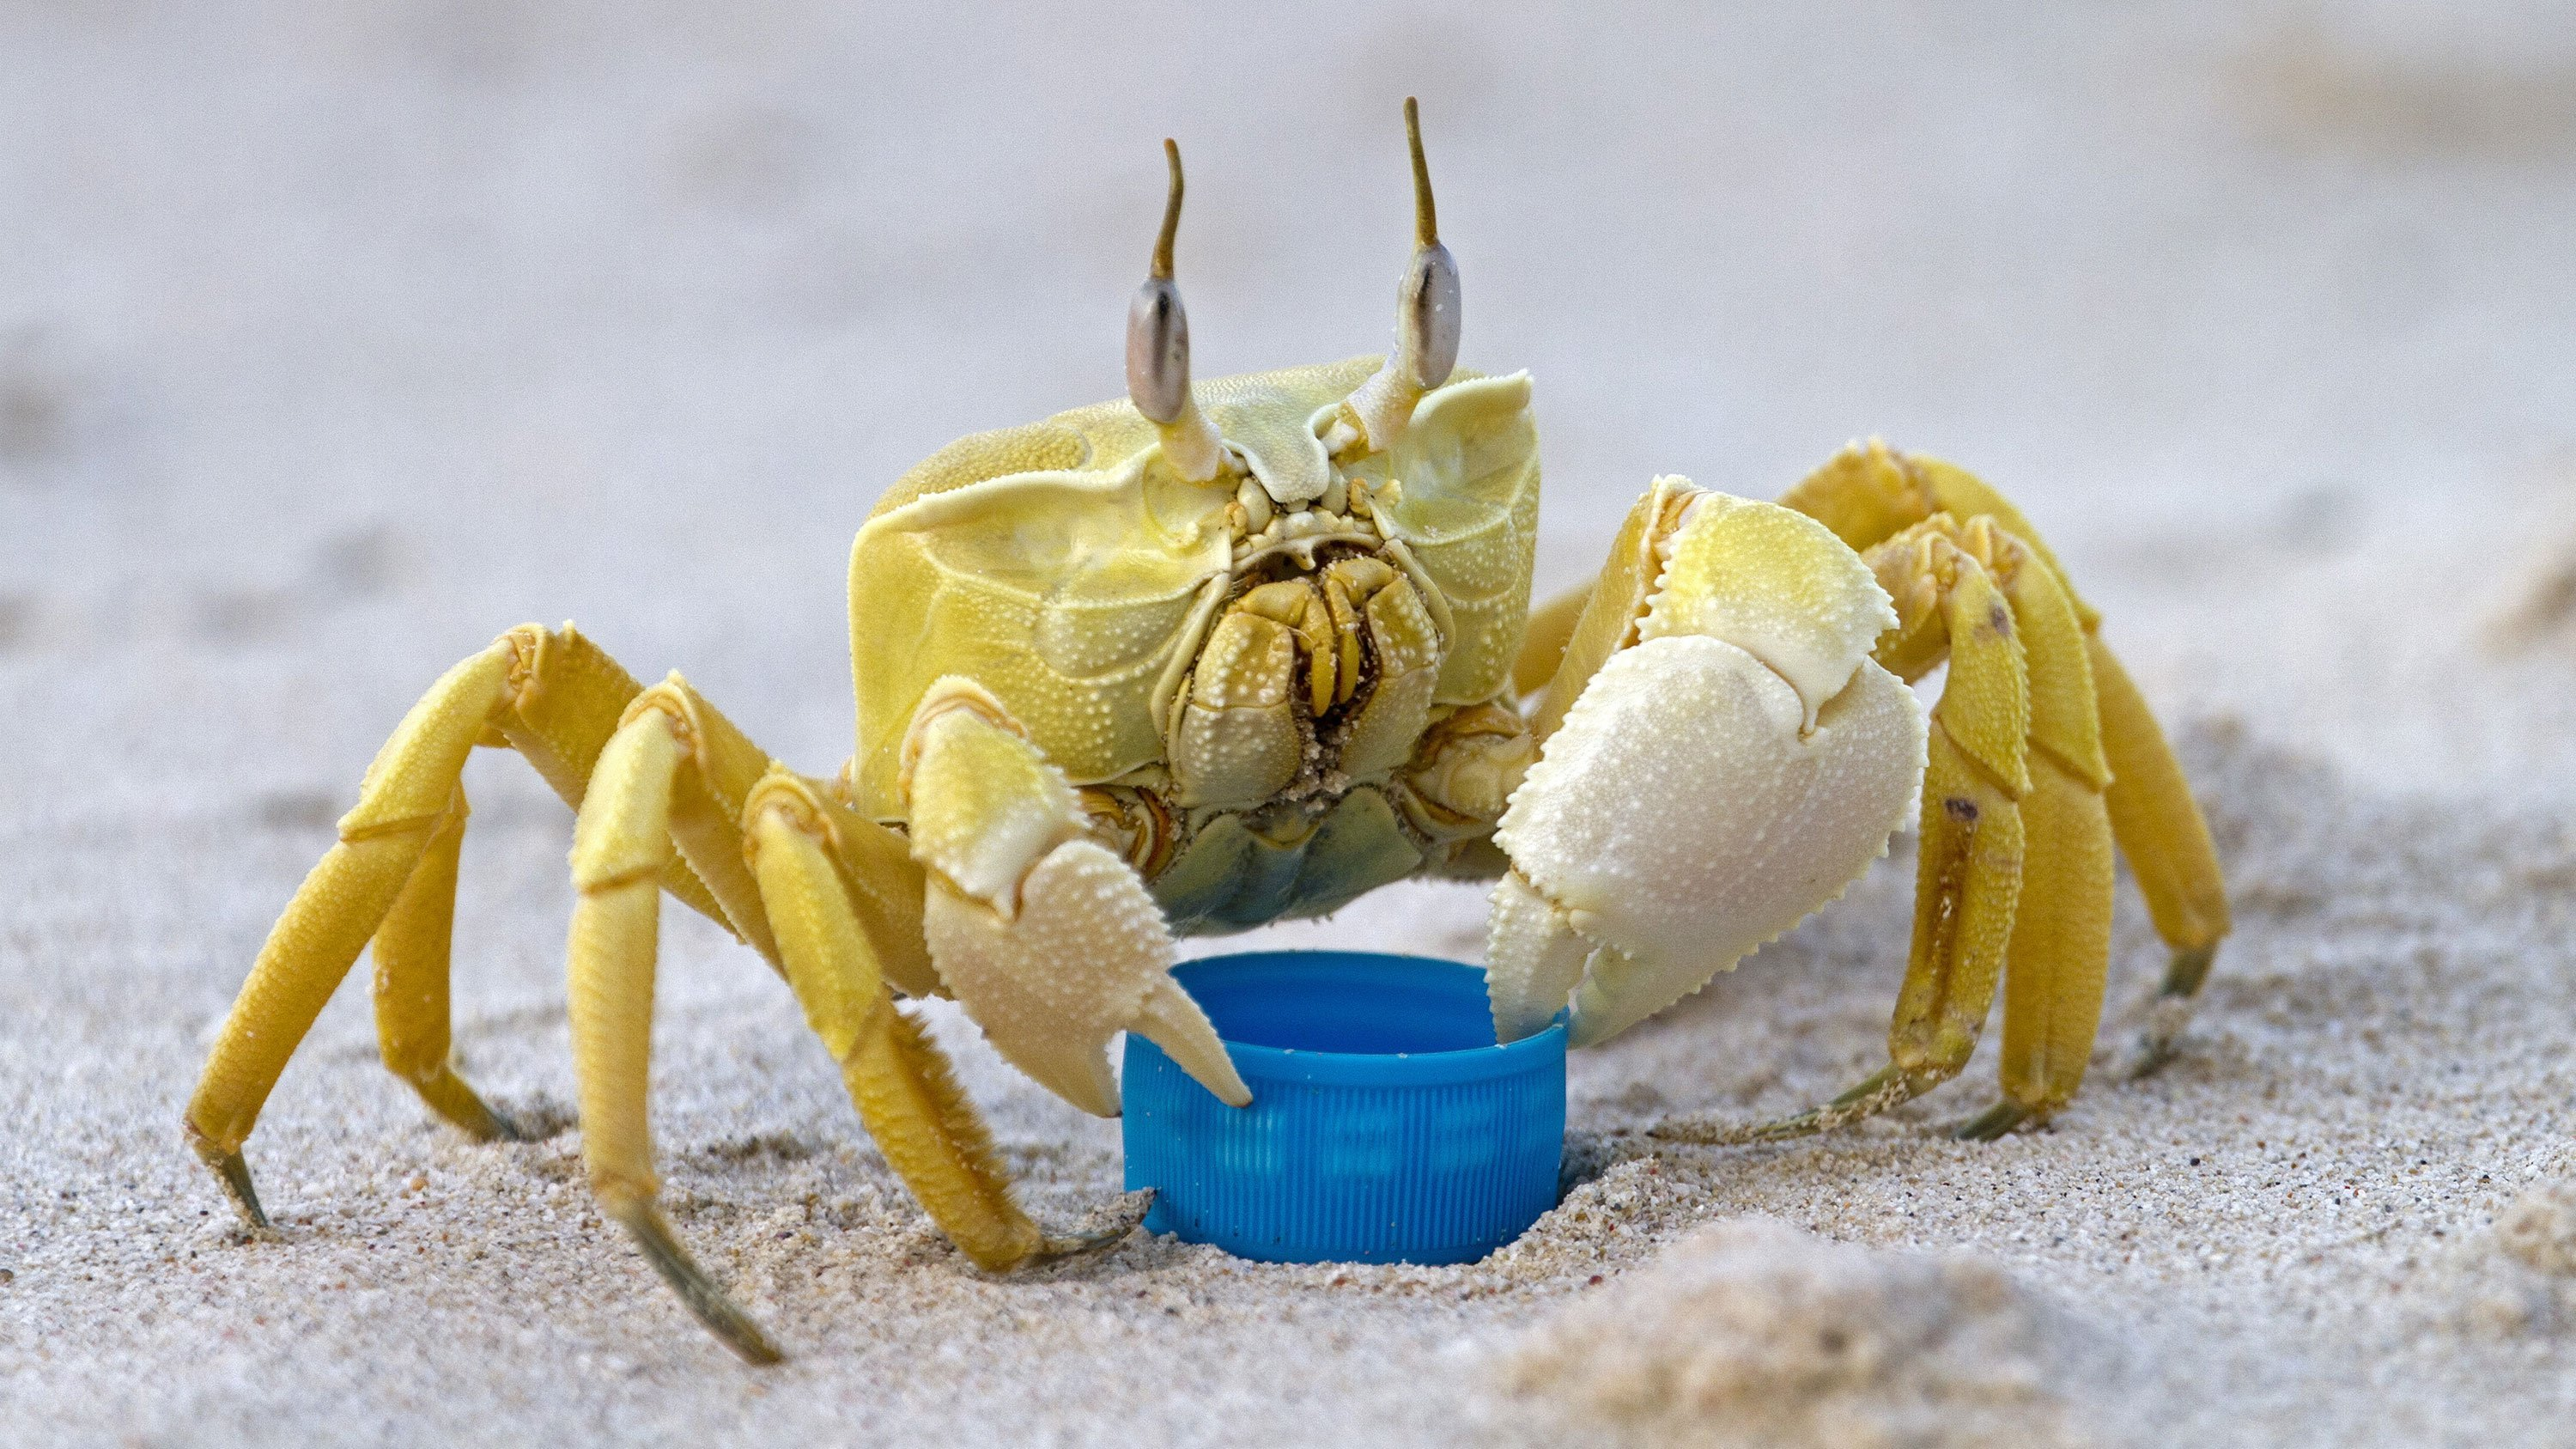 Ghost crabs 'growl' from their stomachs, scientists find